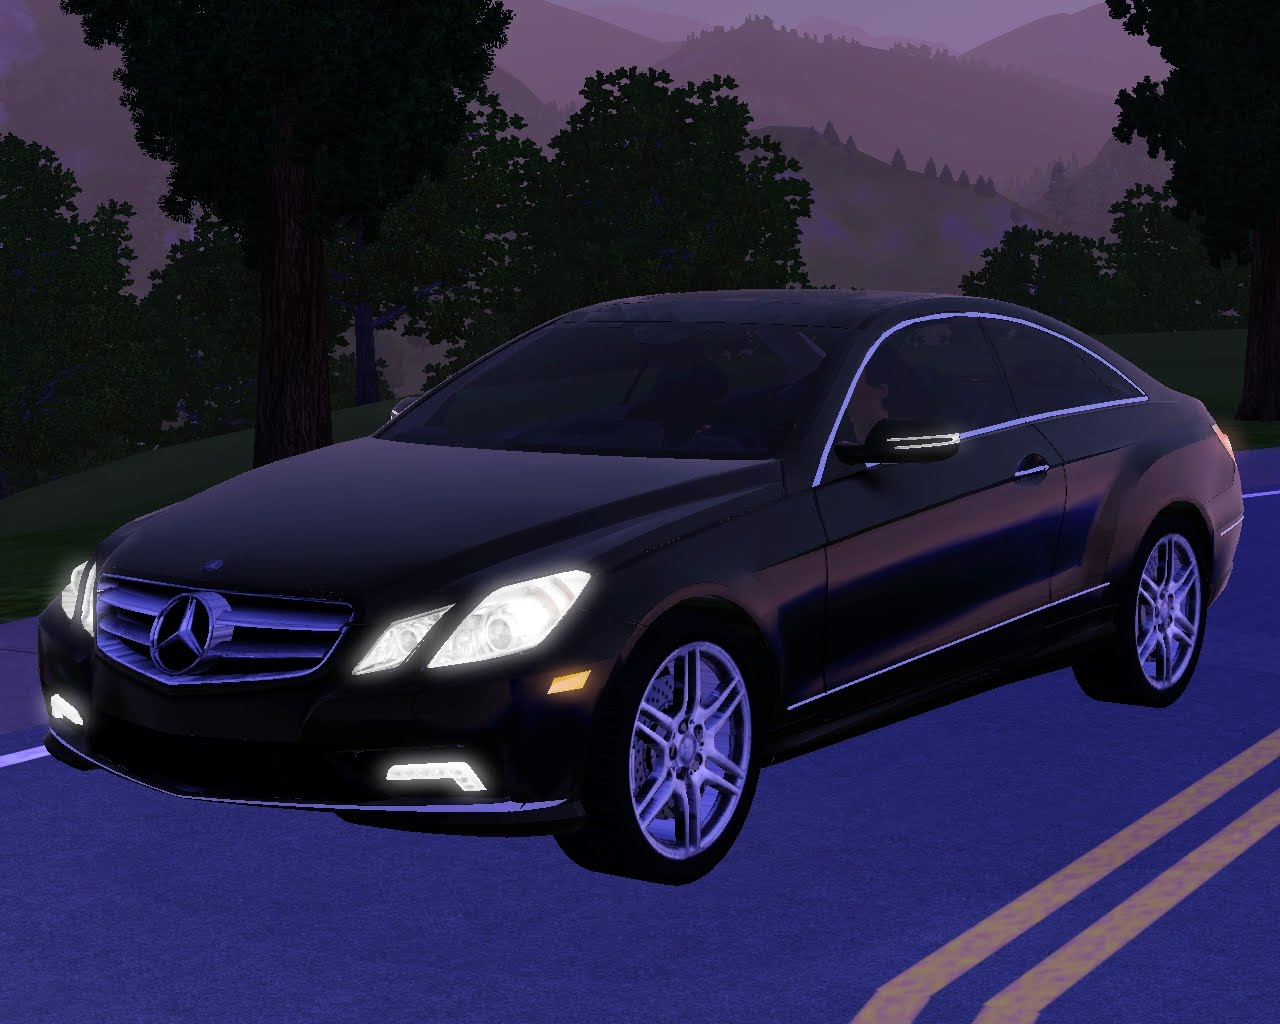 My sims 3 blog 2010 mercedes benz e550 coupe by fresh prince for 2010 mercedes benz e550 coupe